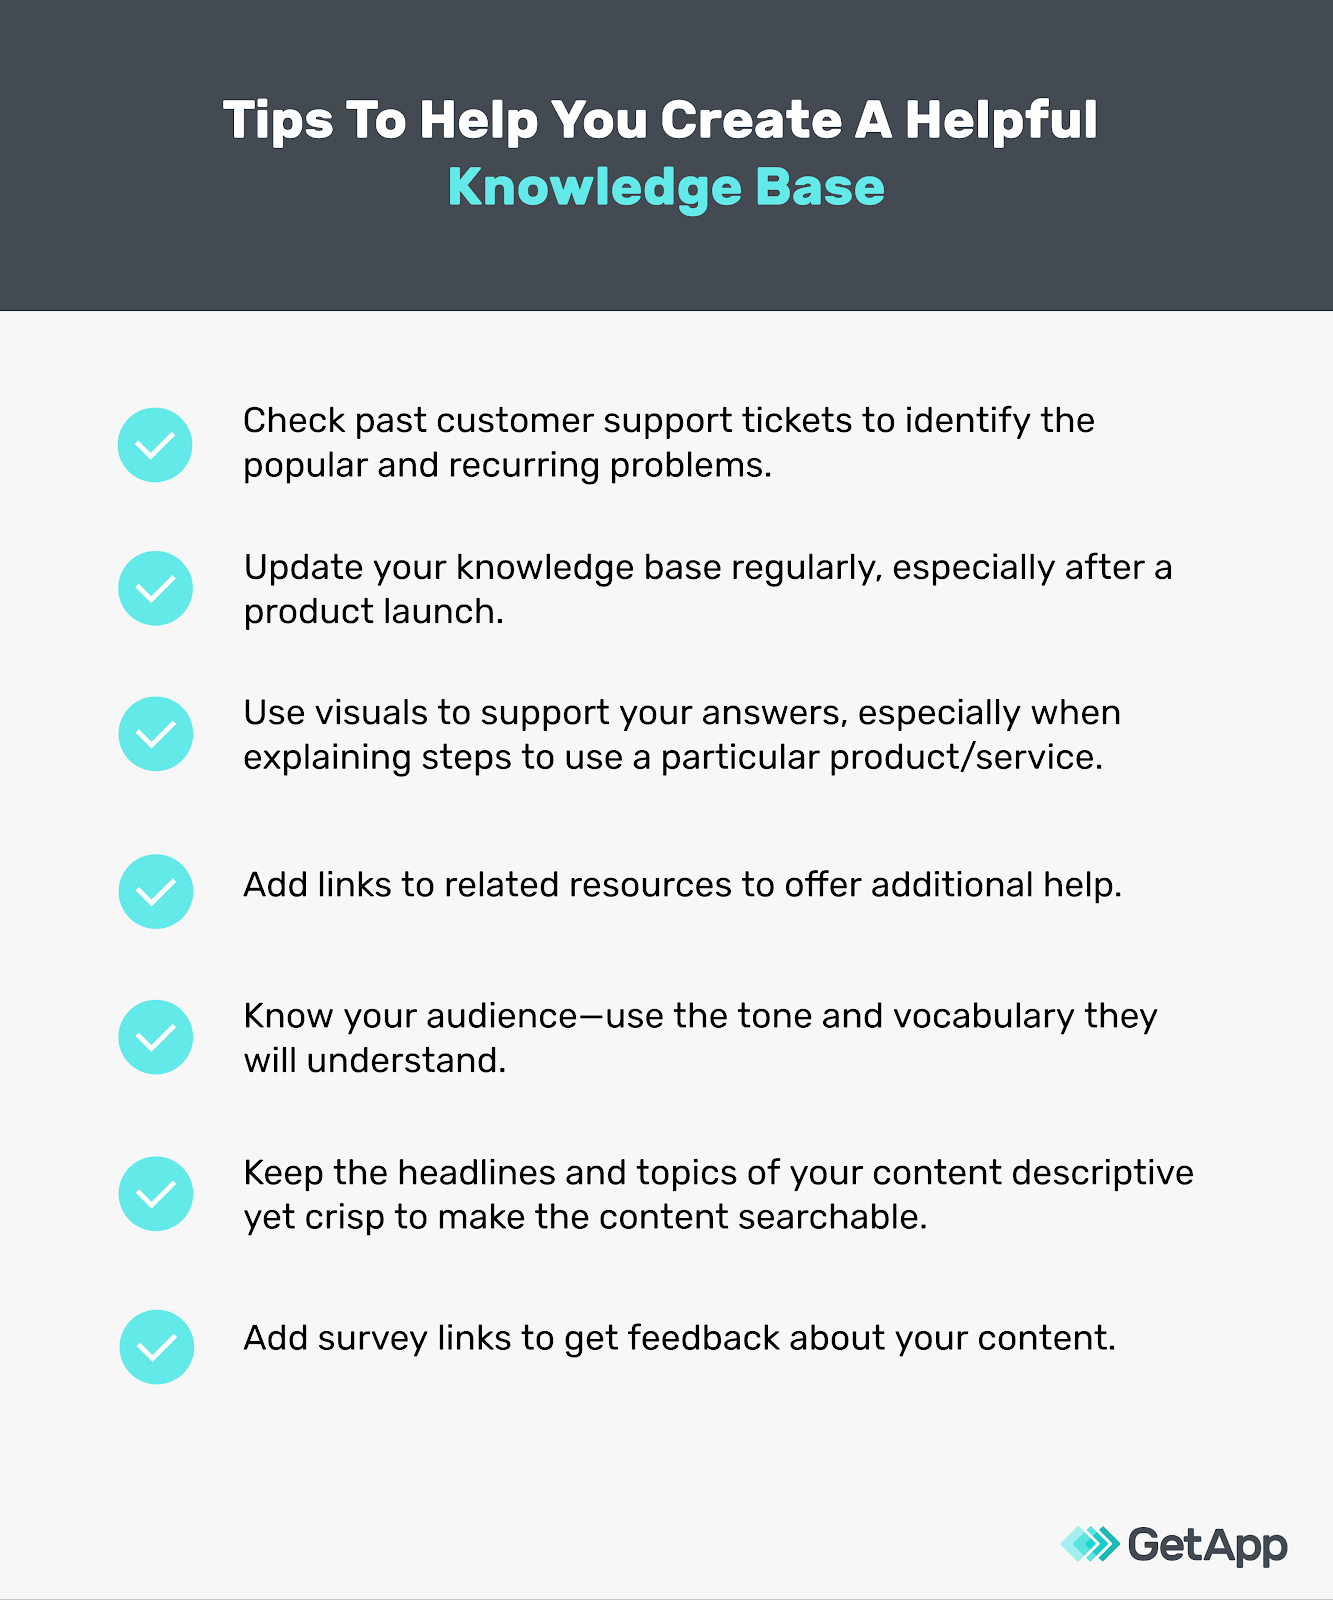 Tips to create useful knowledge base